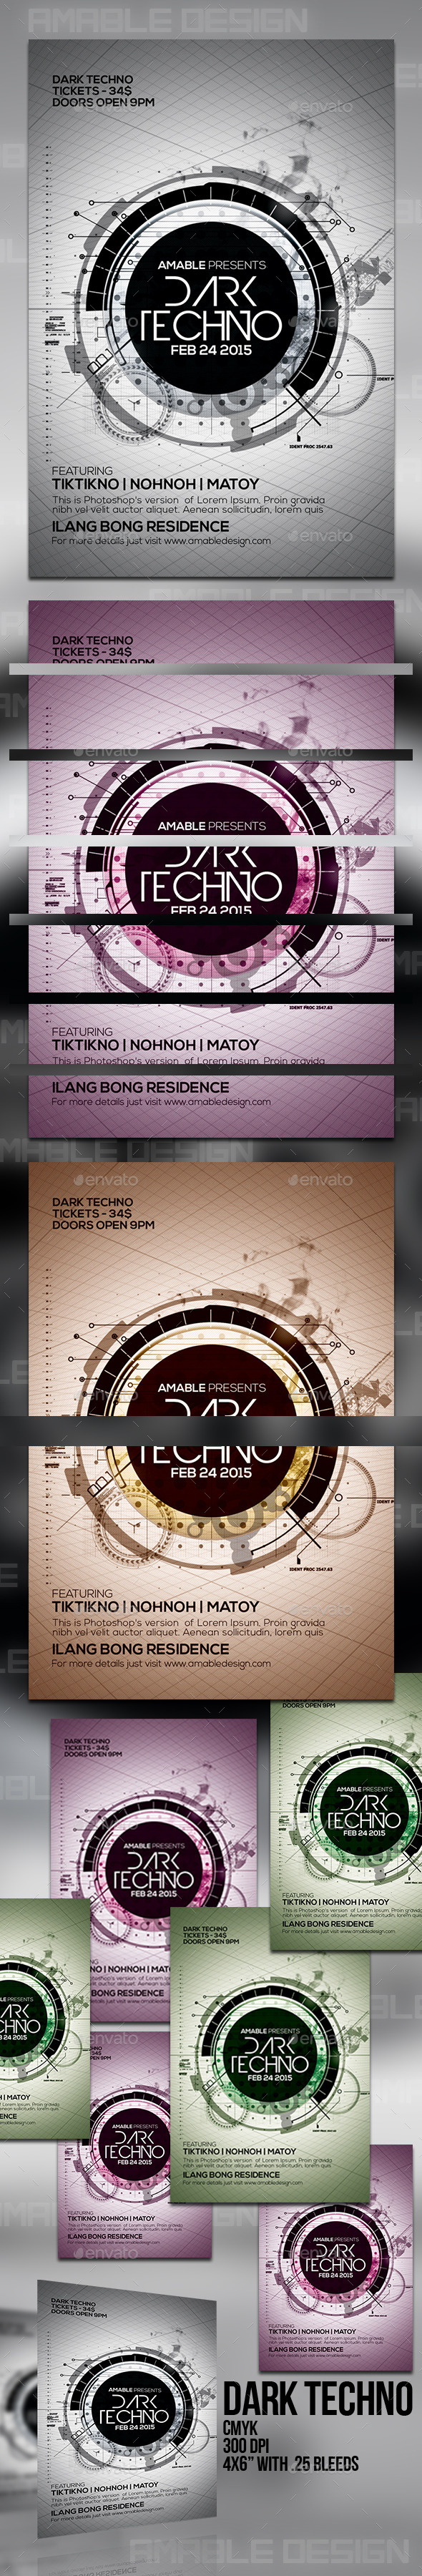 GraphicRiver Dark Techno Flyer 10436237